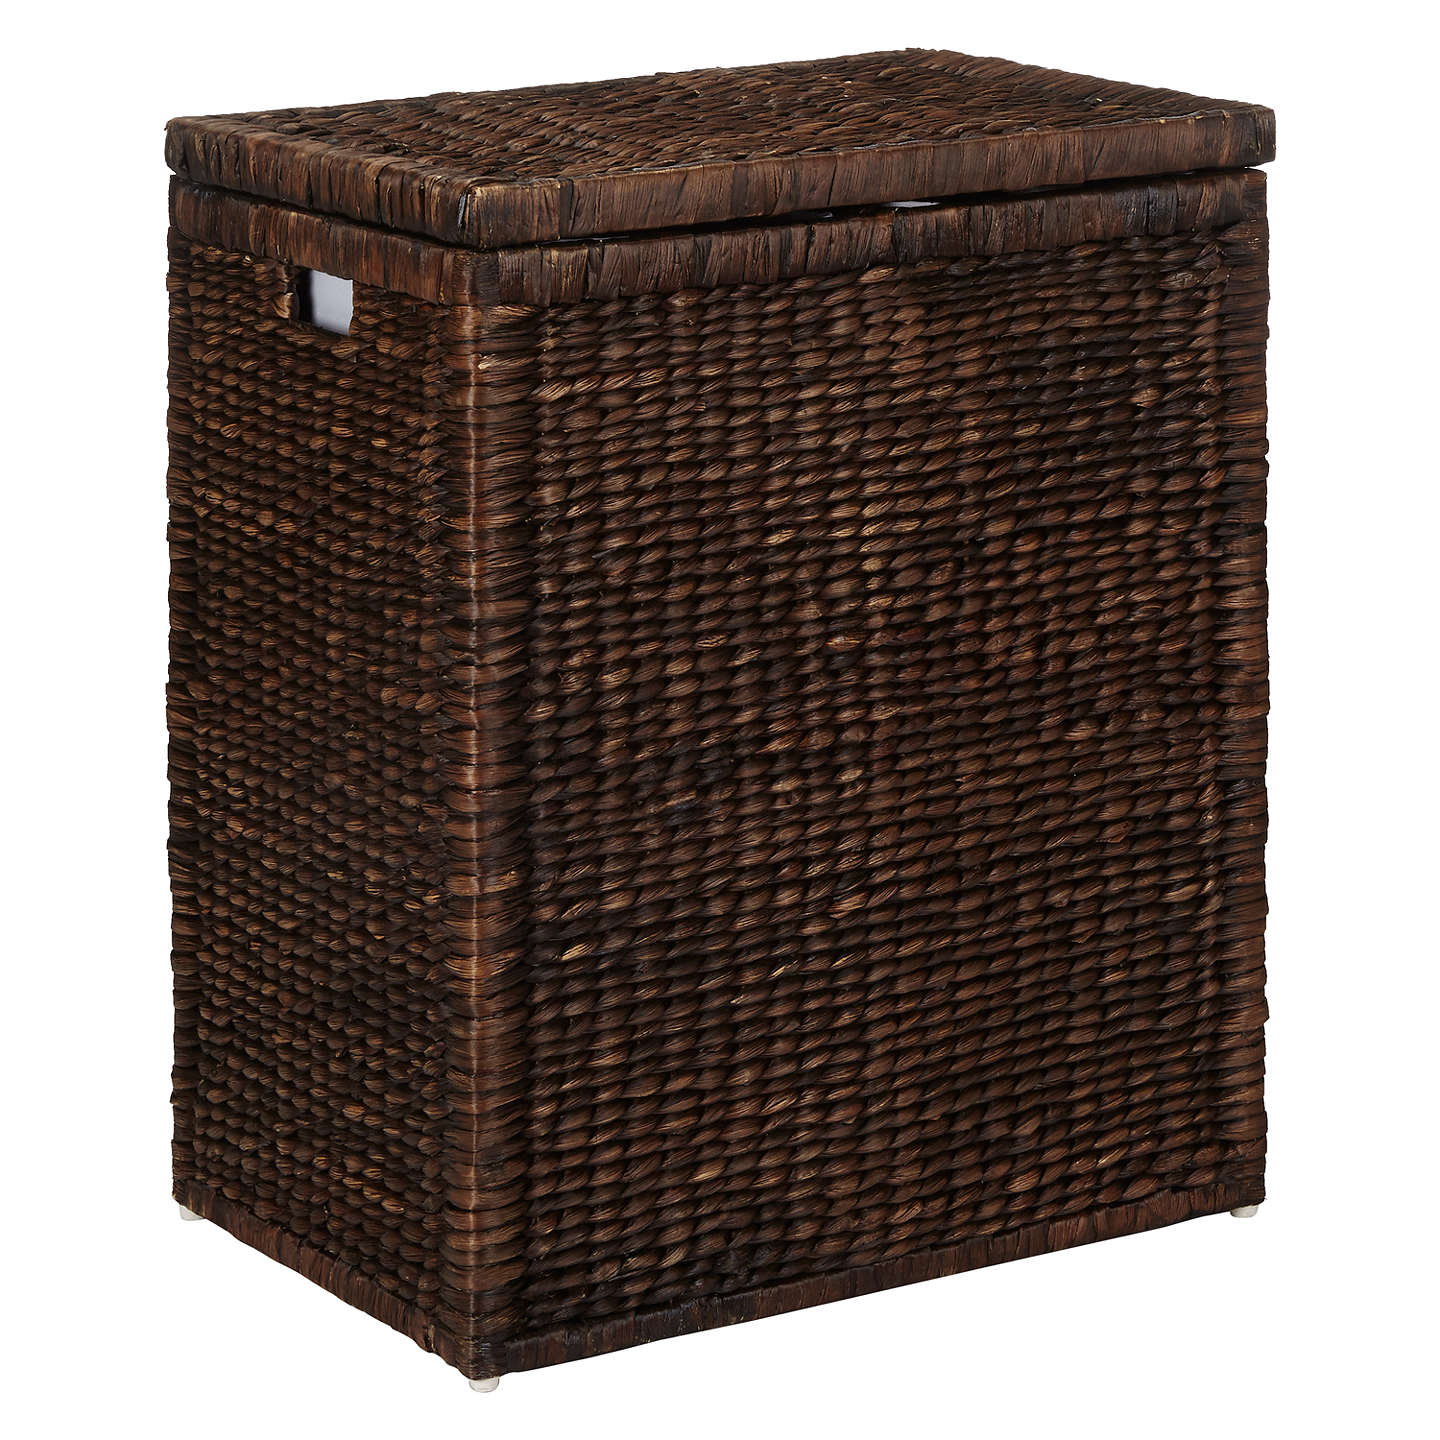 Find great deals on eBay for double laundry basket. Shop with confidence.